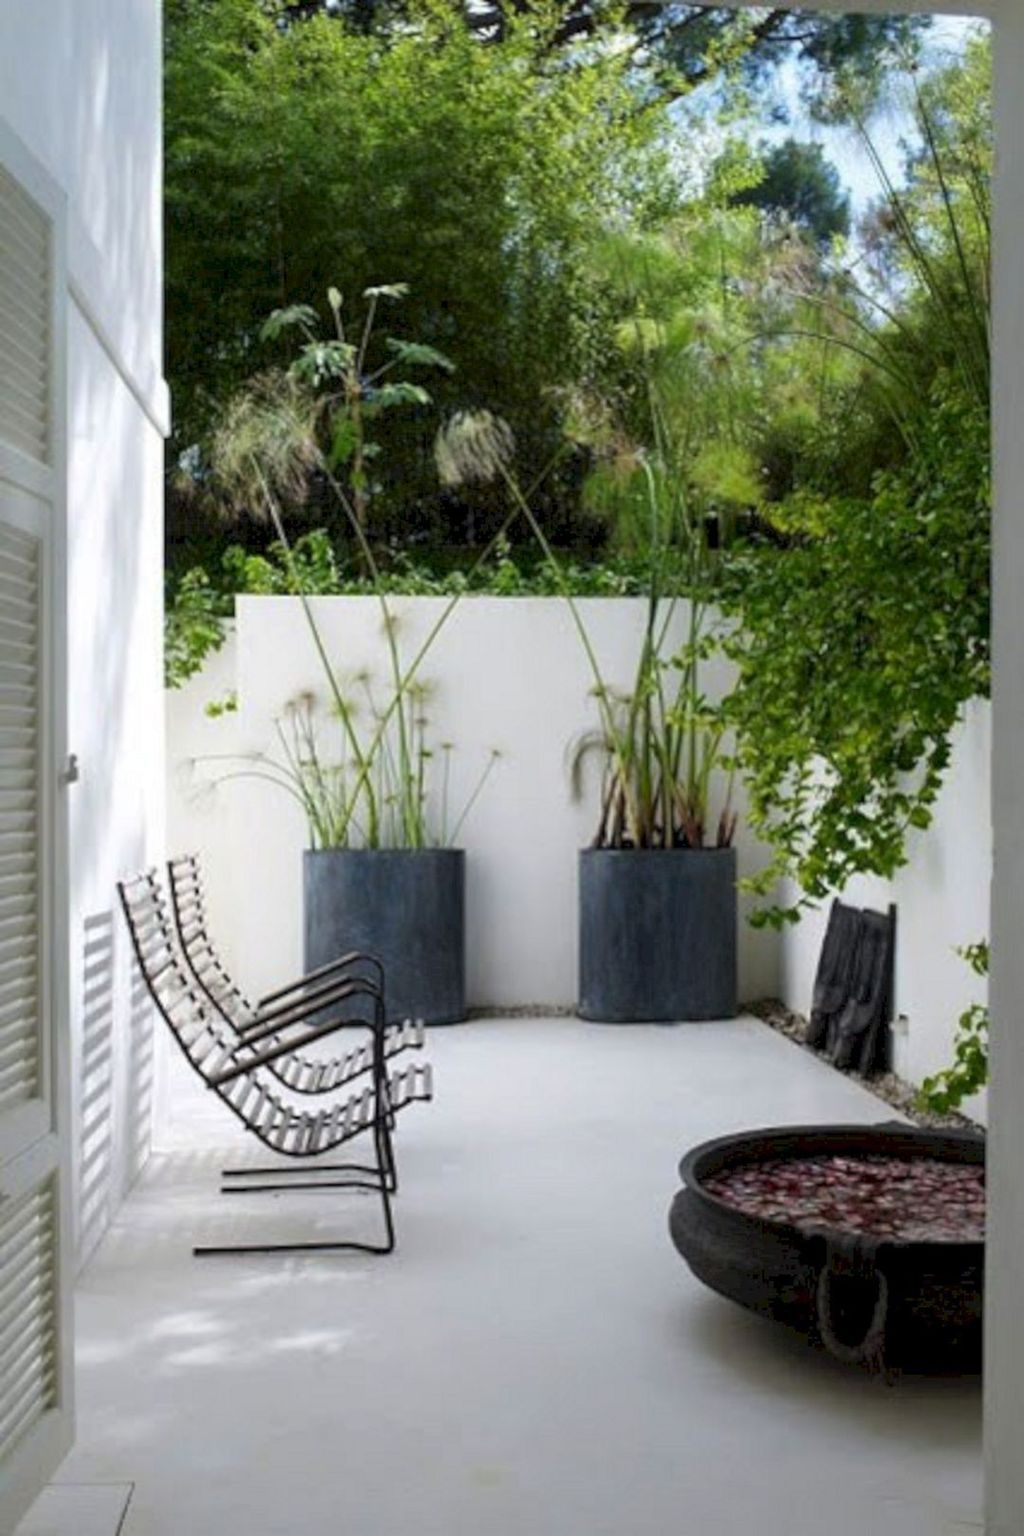 The Best Minimalist Garden Design Ideas You Have To Try 25